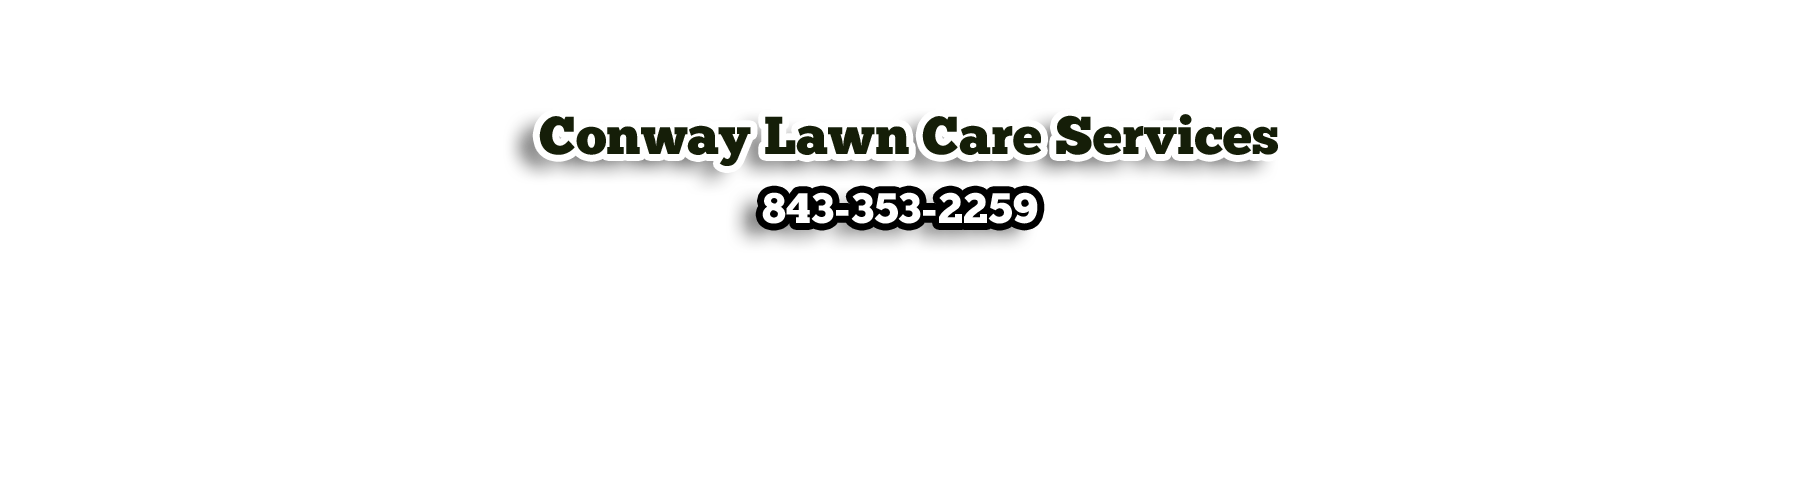 Conway Lawn Care Services